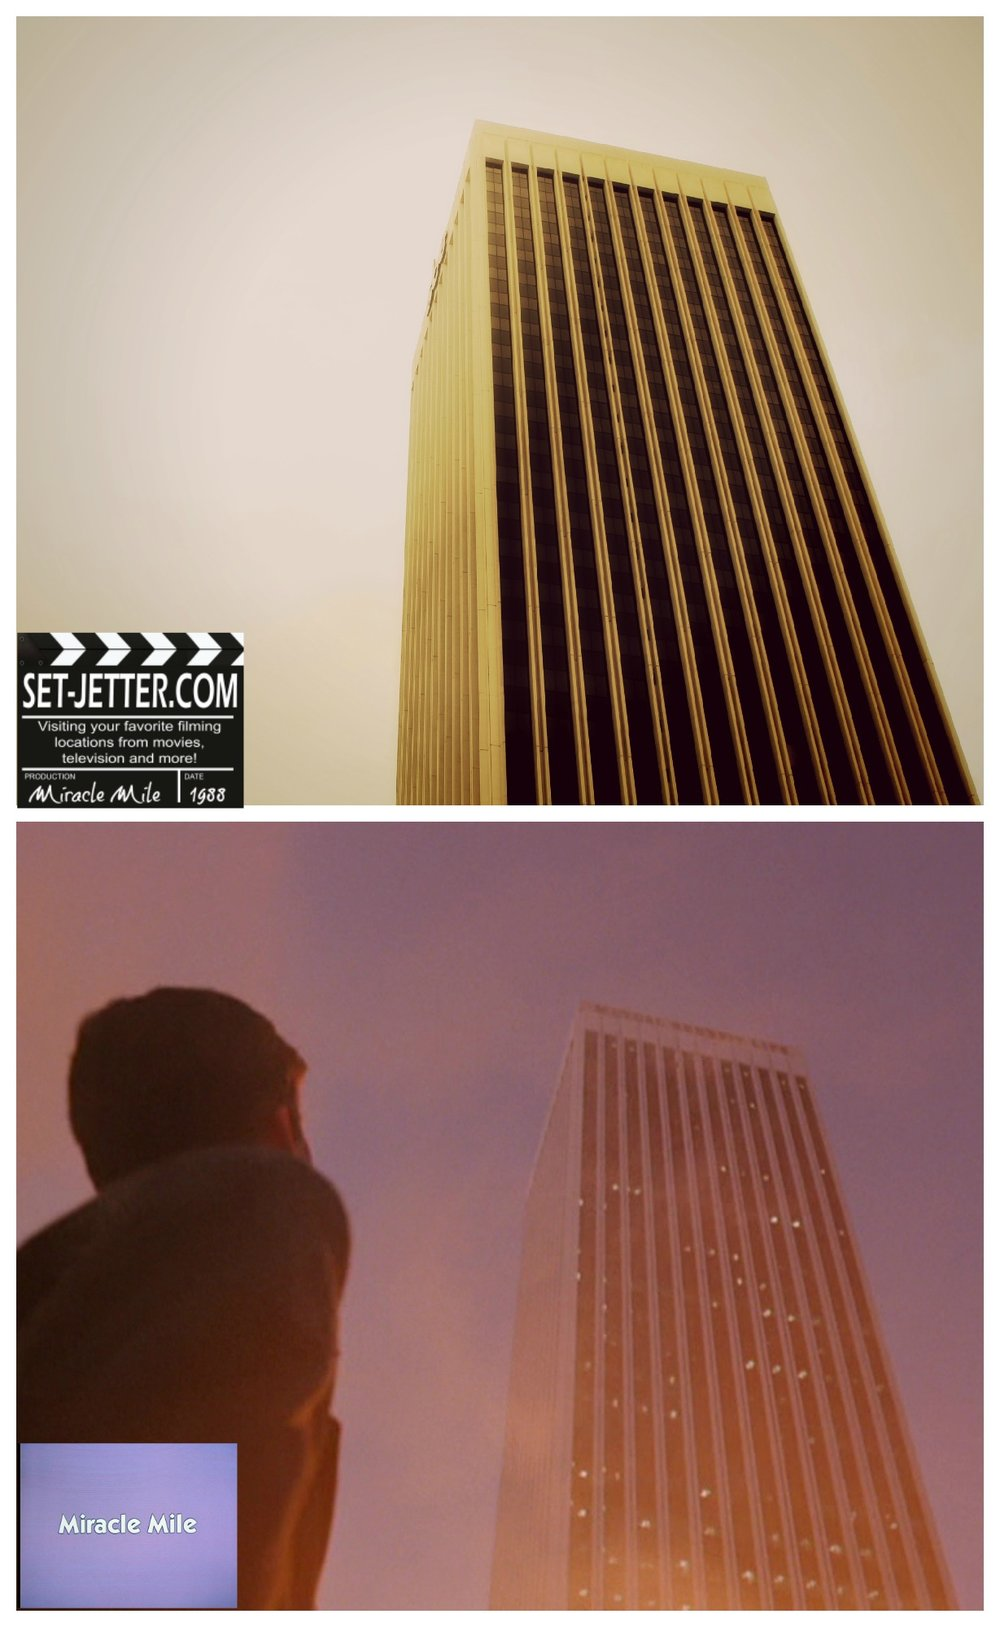 Miracle Mile comparison 40.jpg